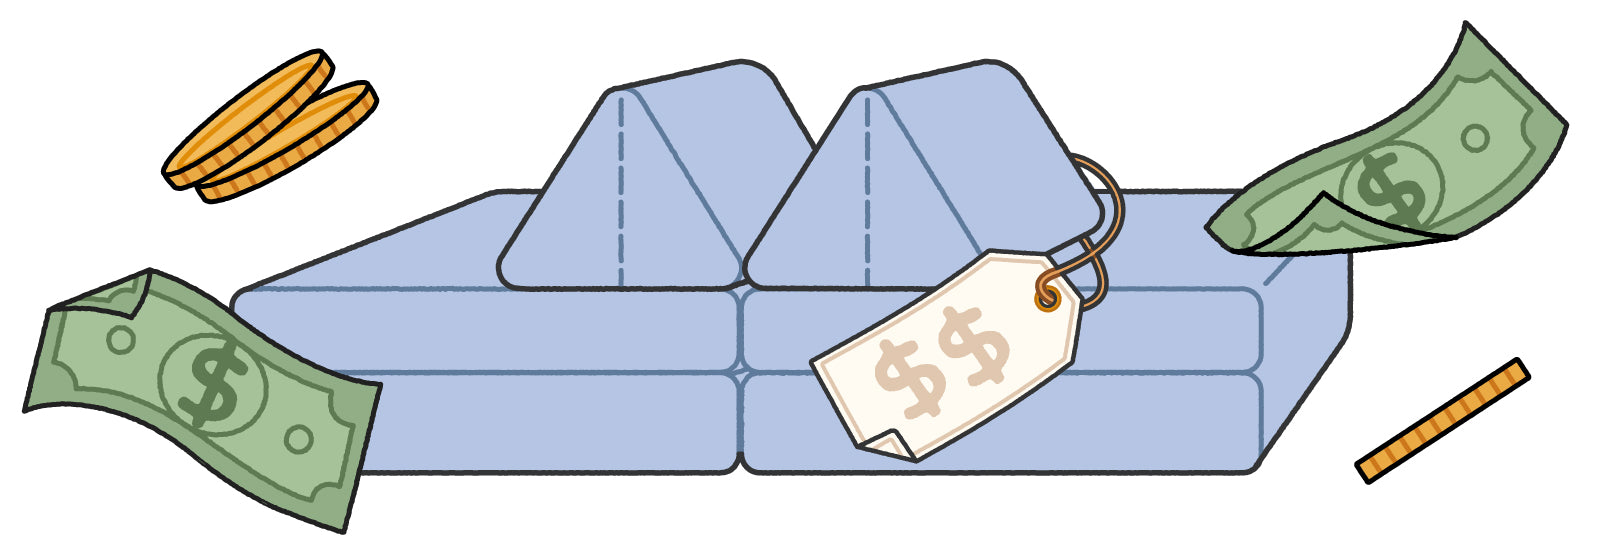 Illustration of light blue Nugget couch with price tag, coins and dollar bills